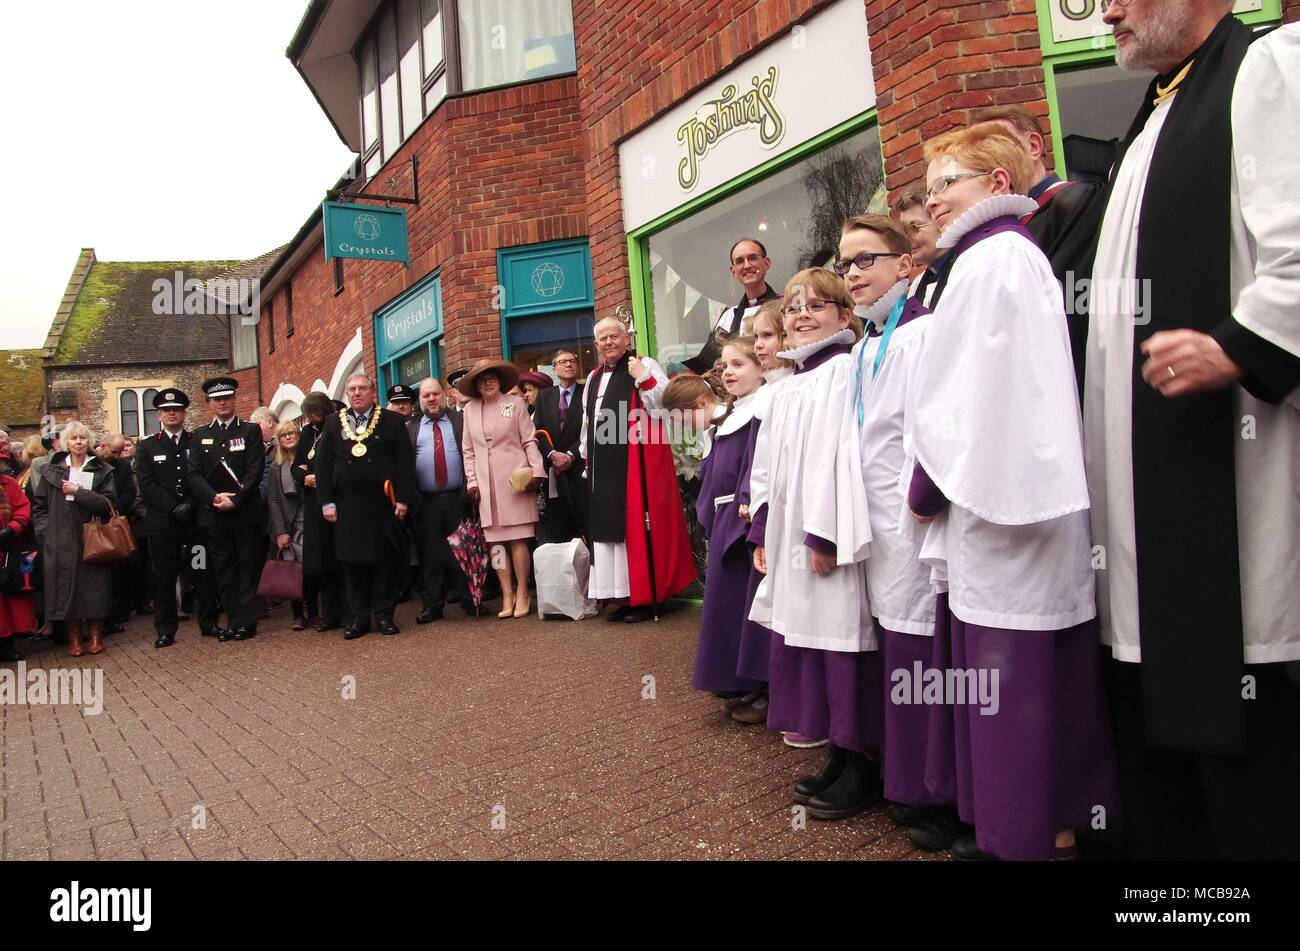 Salisbury, UK 15th April 2018 A Celebration of the Community  Life of the City of Salisbury 15th April 2018. With the chemical attack in Salisbury having an effect on the City of Salisbury. Church leaders, firebrigade, police force, NHS, local shop owners and the community of Salisbury came together to hold service in the Church of St Thomas.  A blessing with the throwing of water over the site near where the recent victims of the chemical attack in Salisbury were found followed the church service. Credit: Haydn Wheeler/Alamy Live News - Stock Image